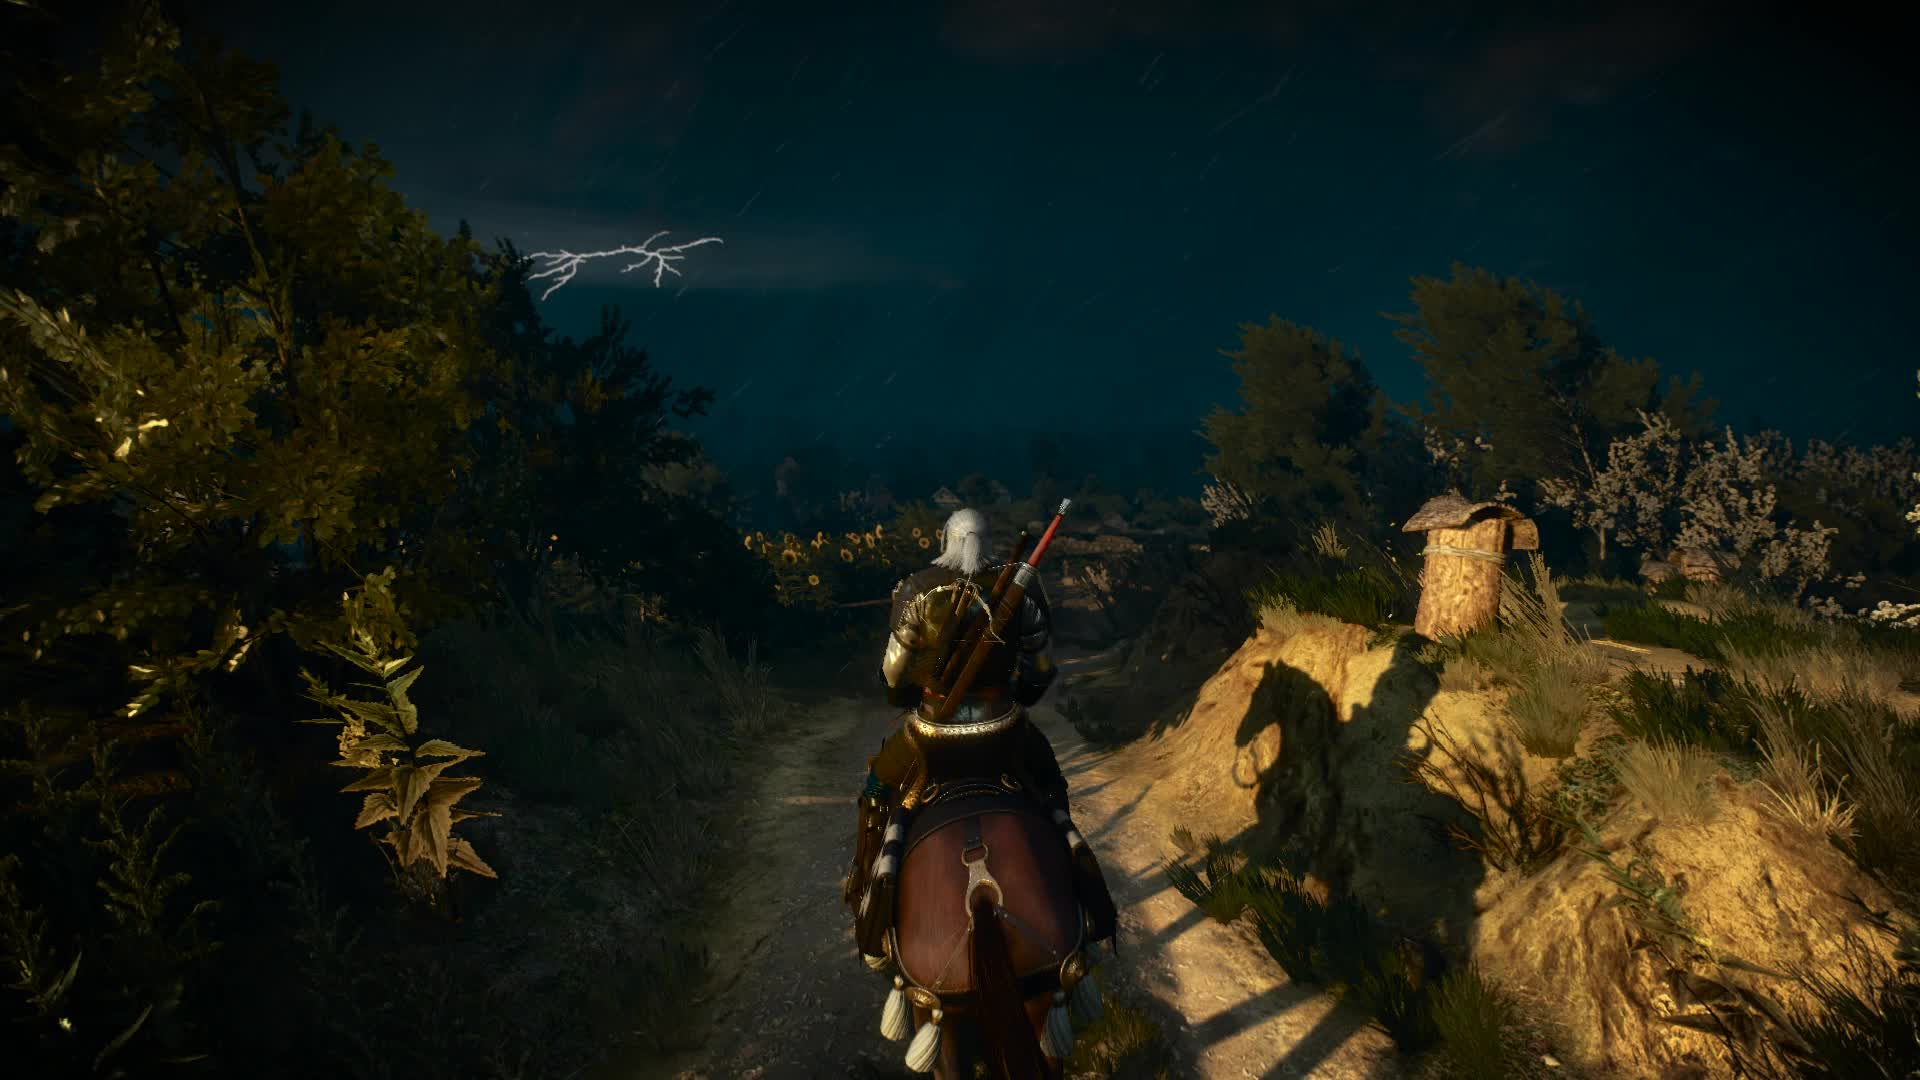 Witcher, Witcher 3, graphics, The beauty of The Witcher 3 GIFs